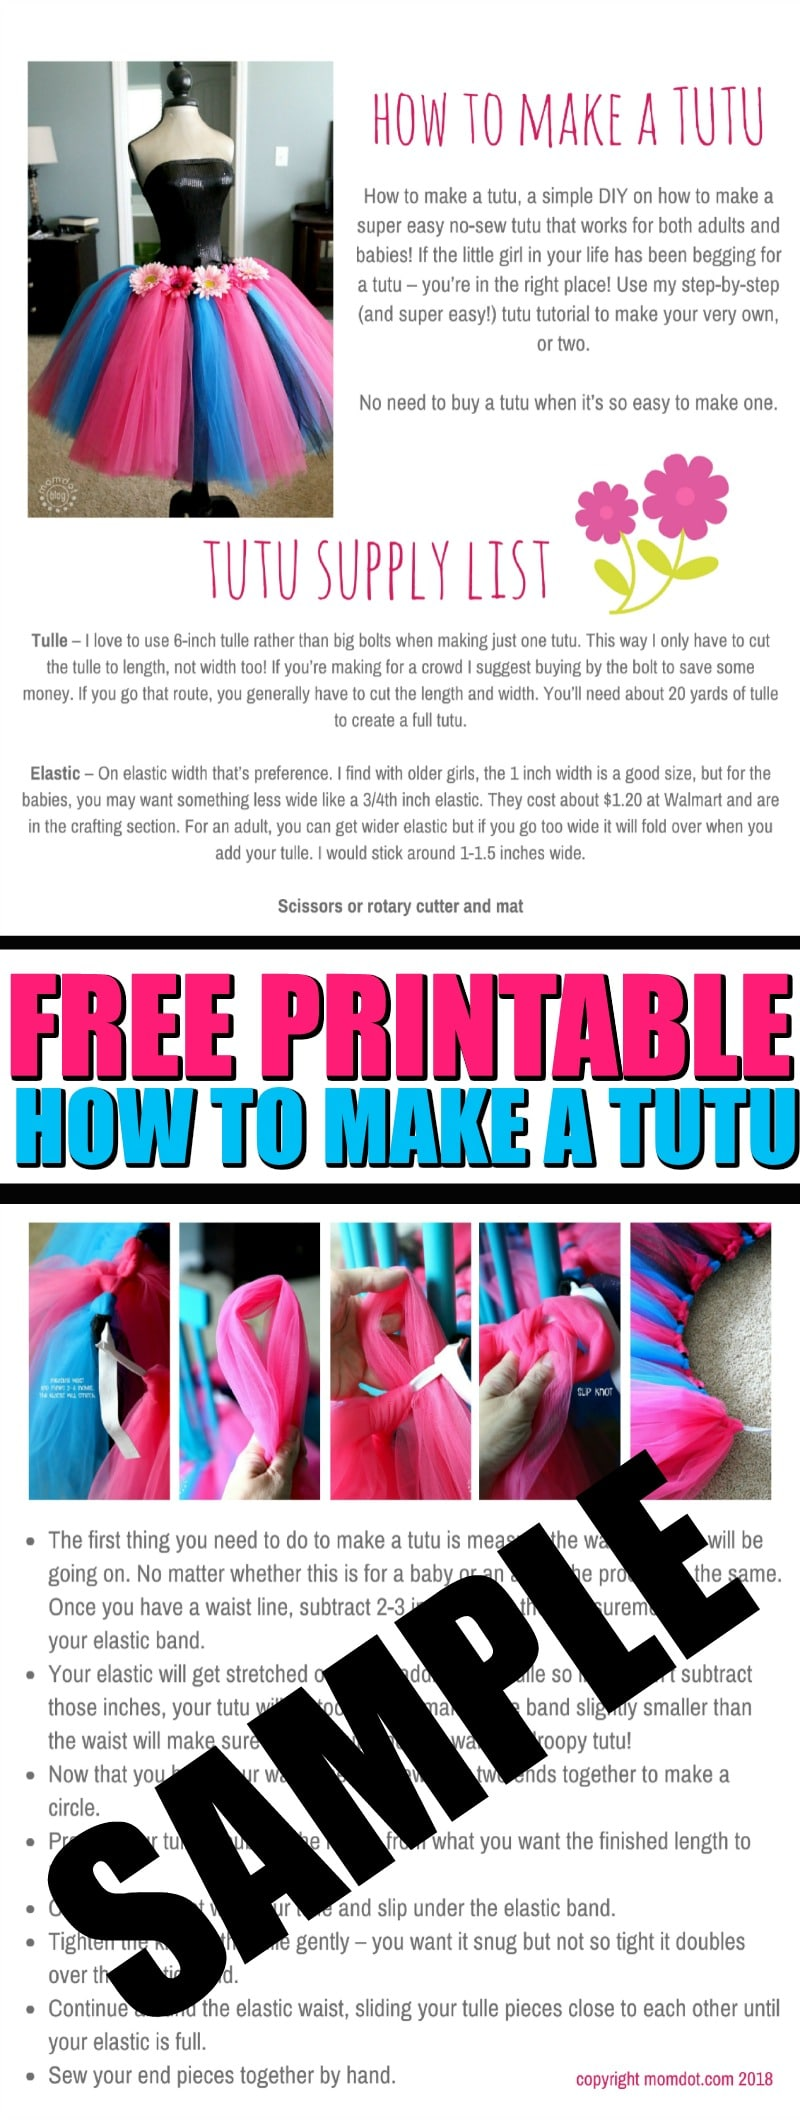 instructions on how to make a tutu